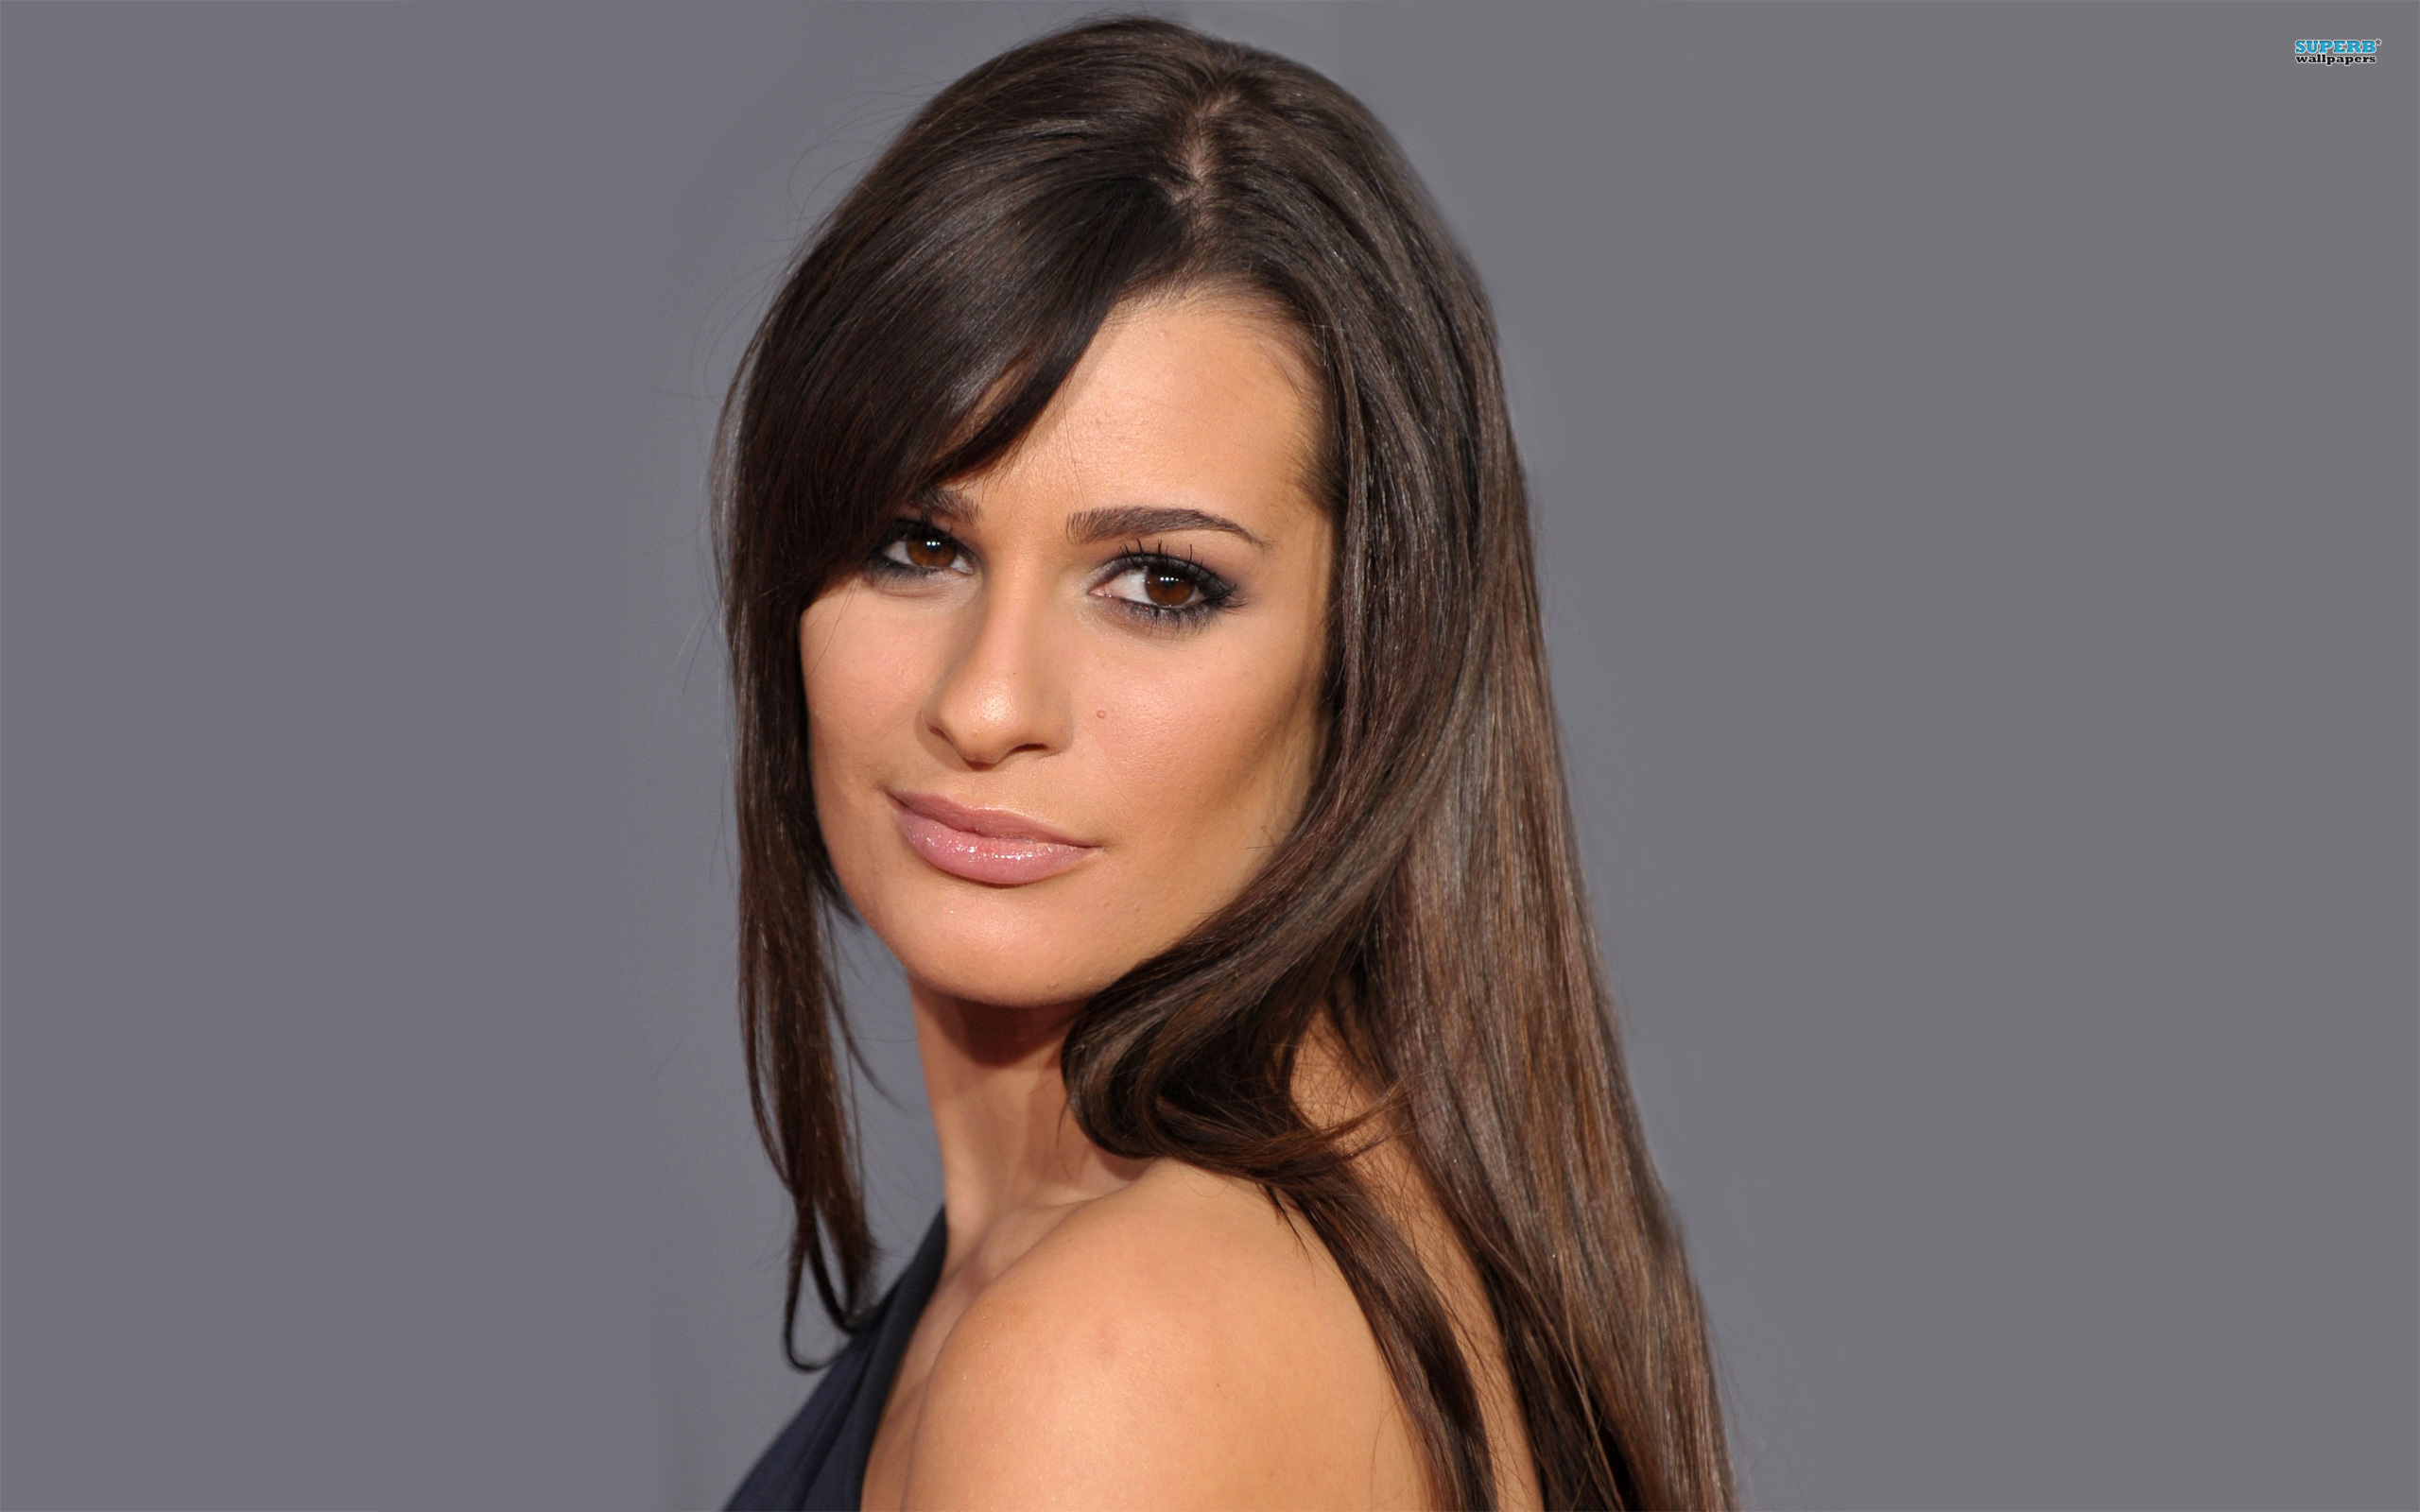 Lea Michele wallpaper 2560x1600 jpg